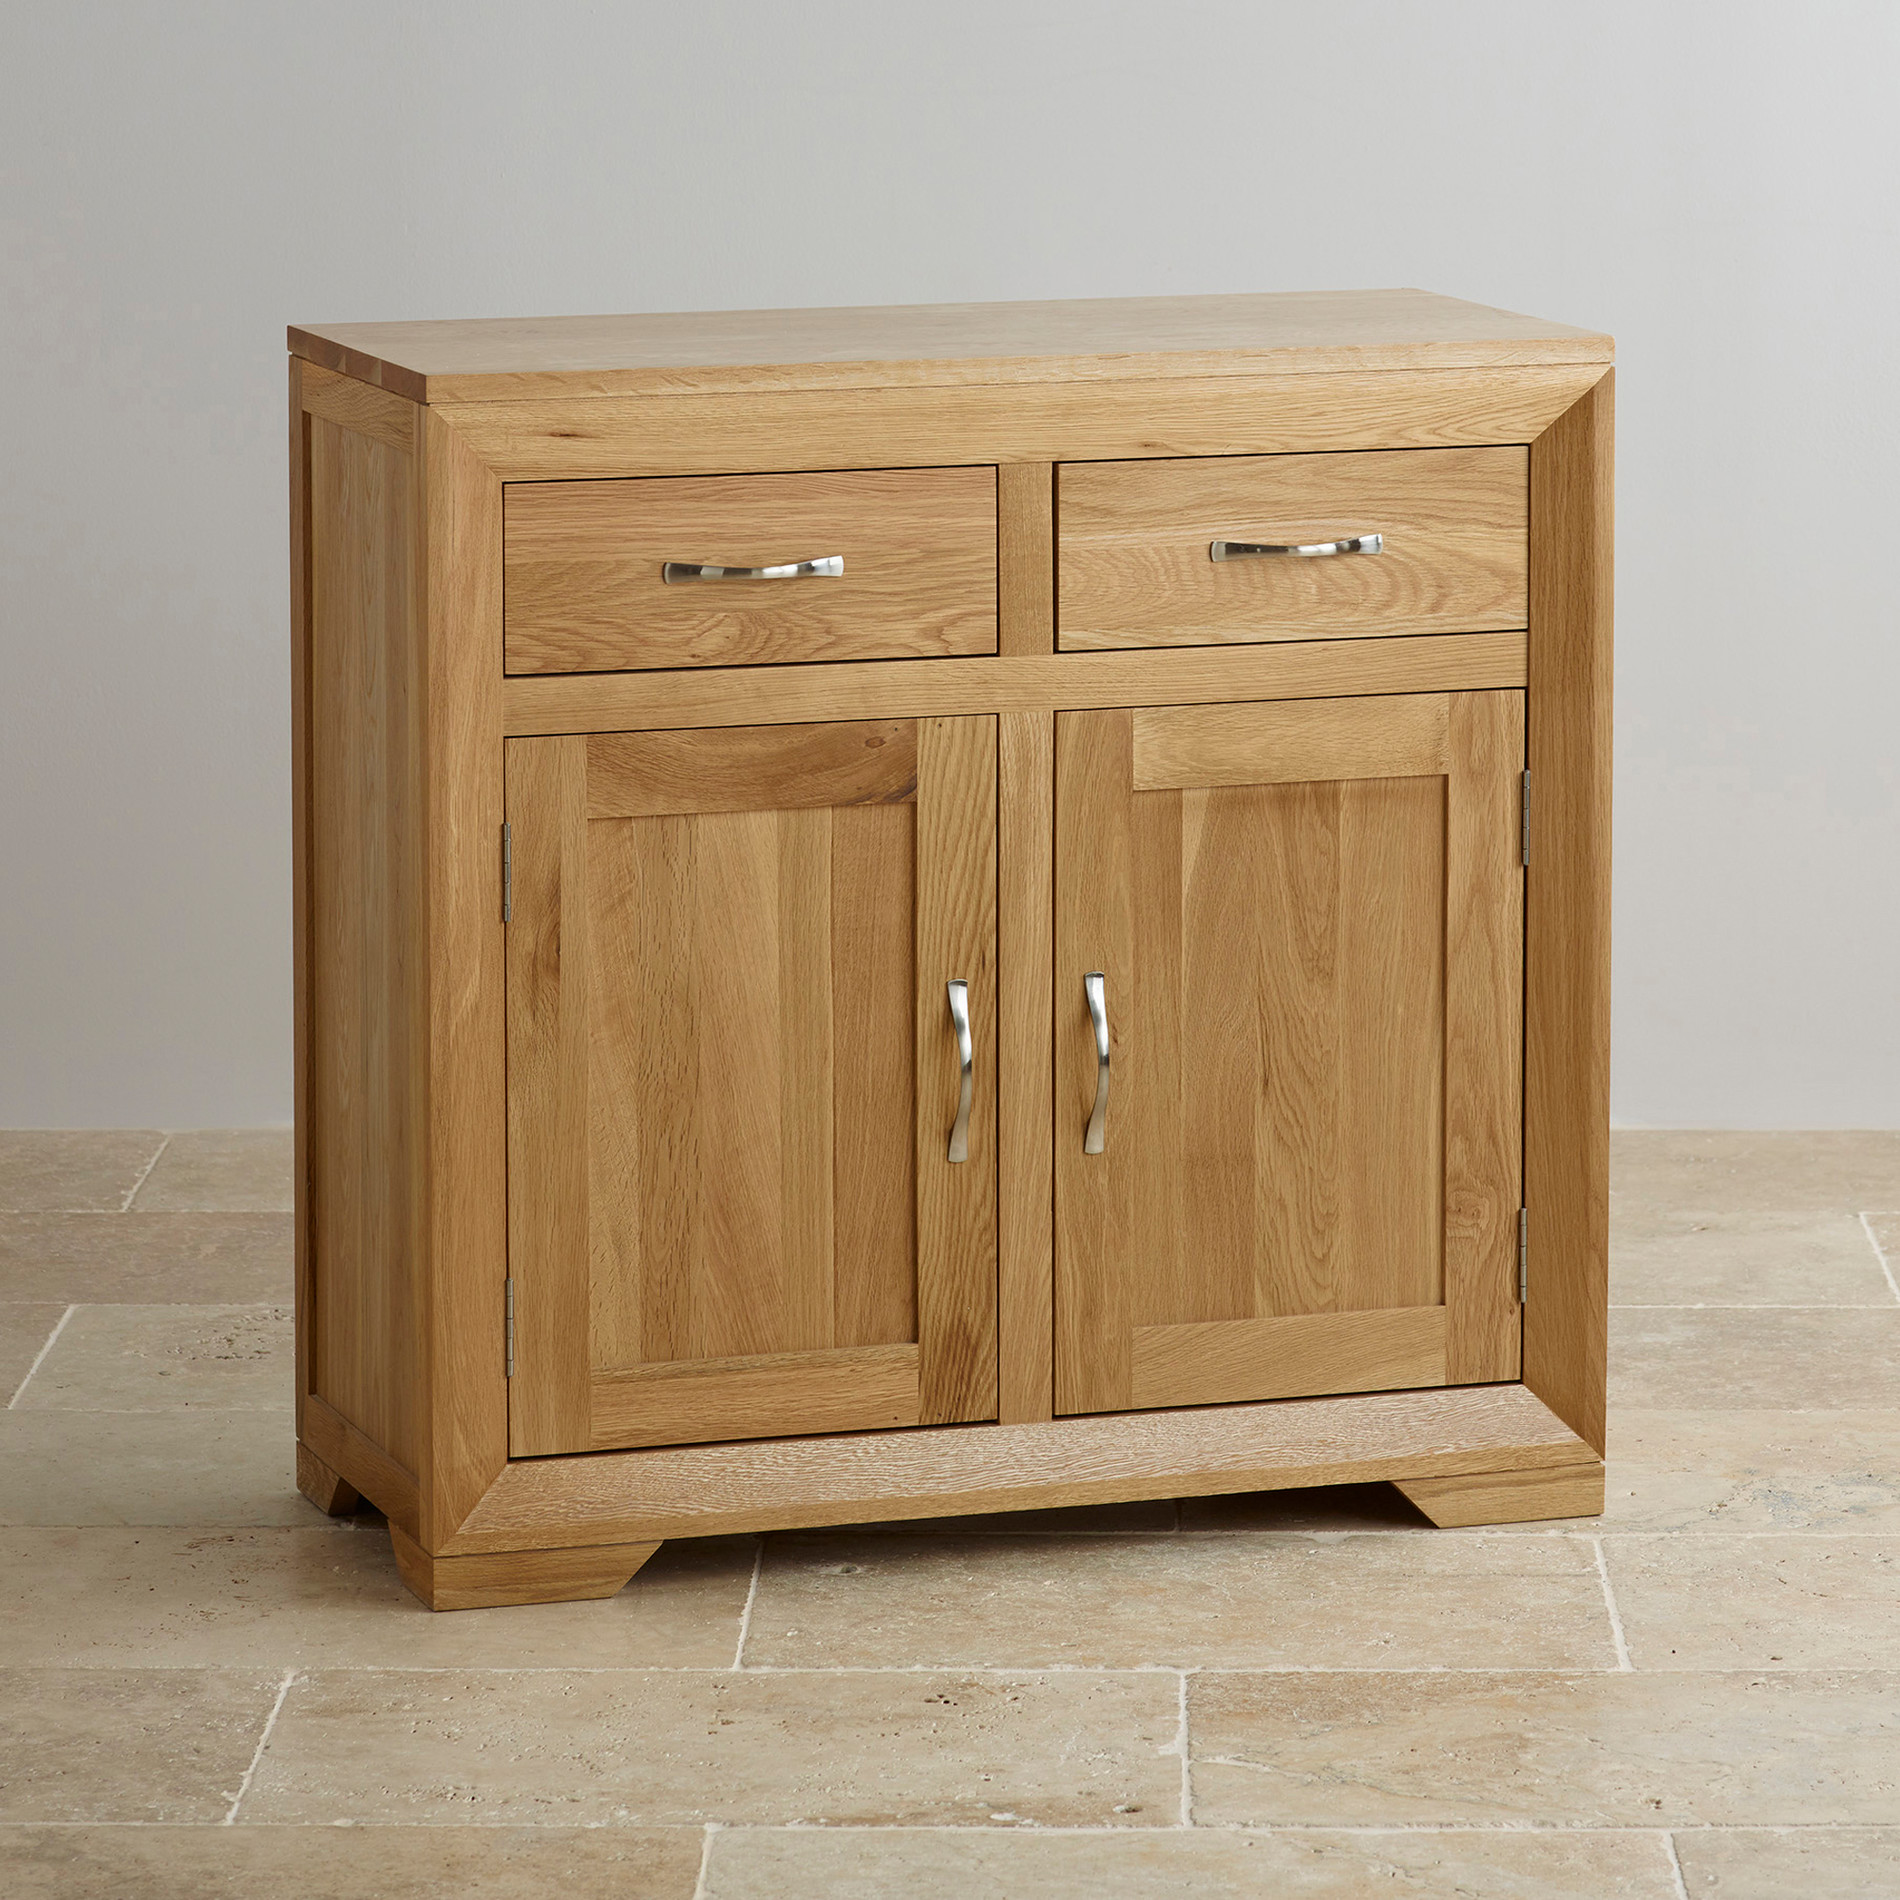 Bevel small sideboard in natural solid oak oak furniture for Oak furniture land